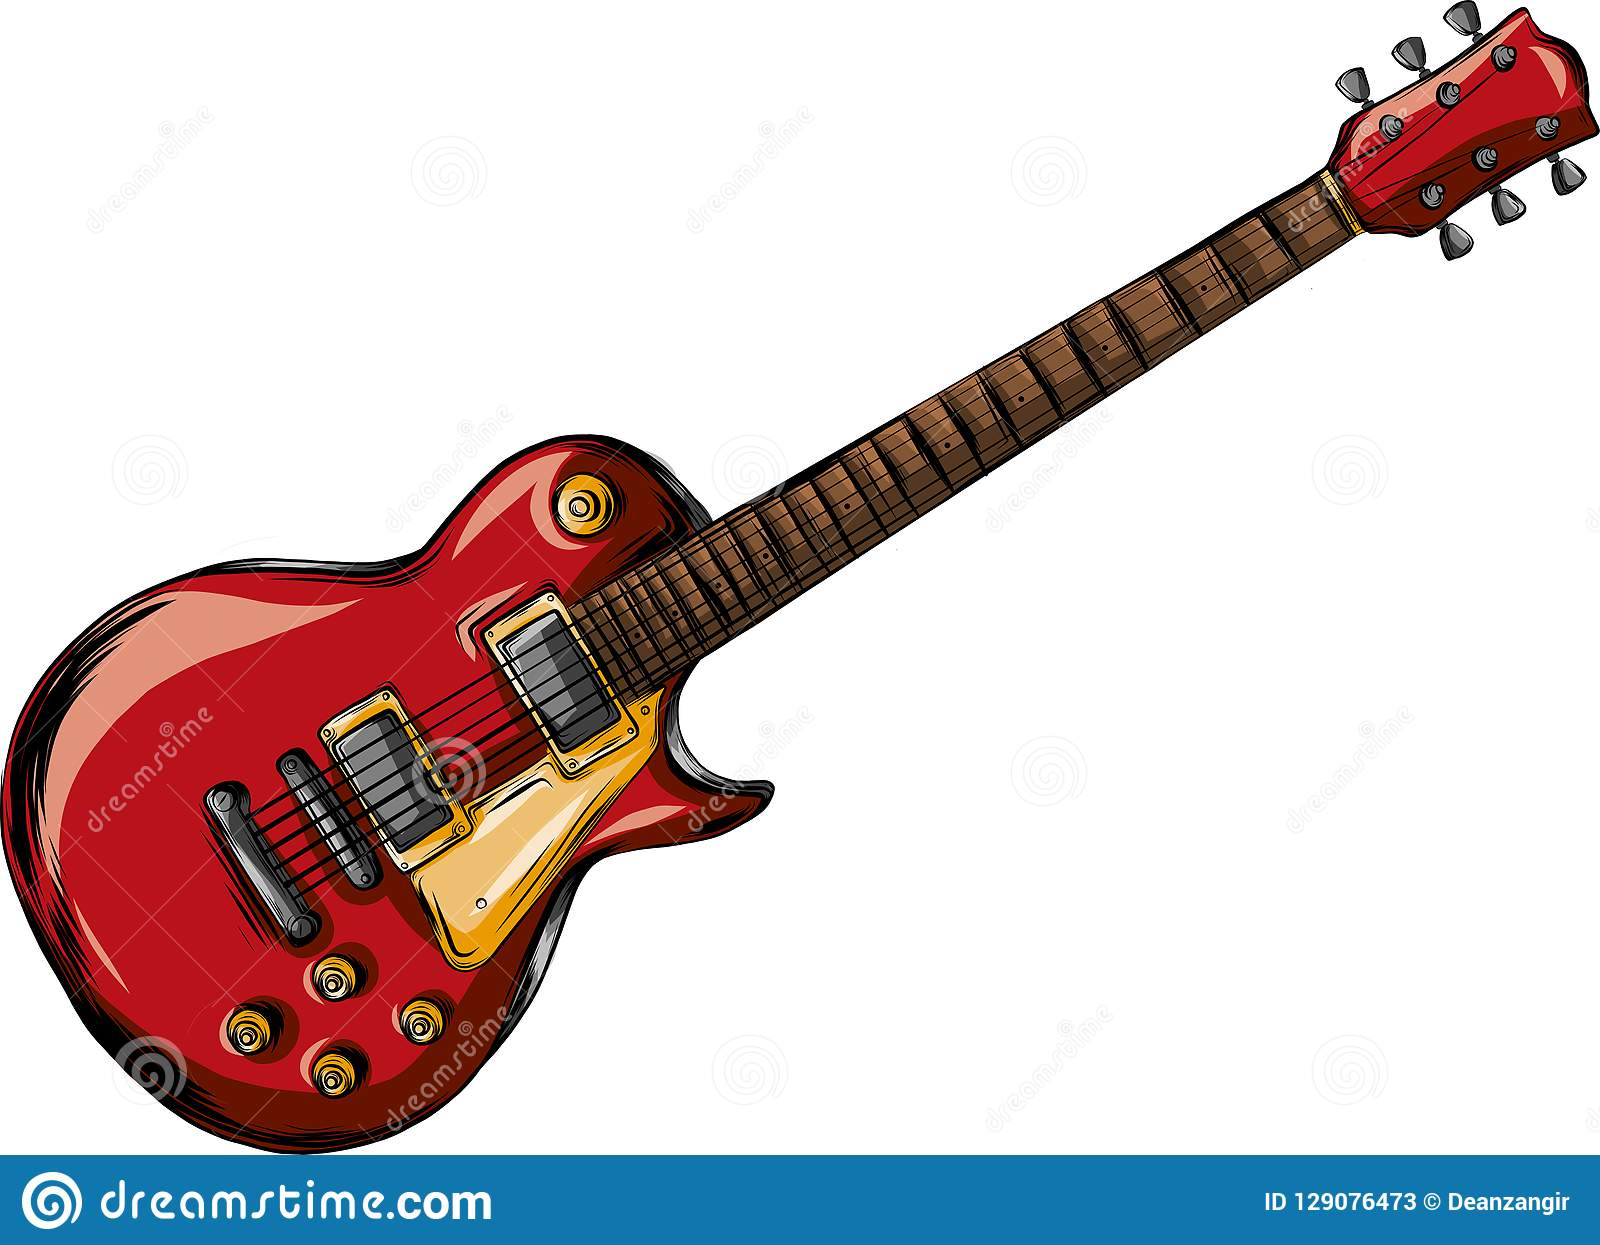 Electric guitar flat vector illustration. Rock music instrument